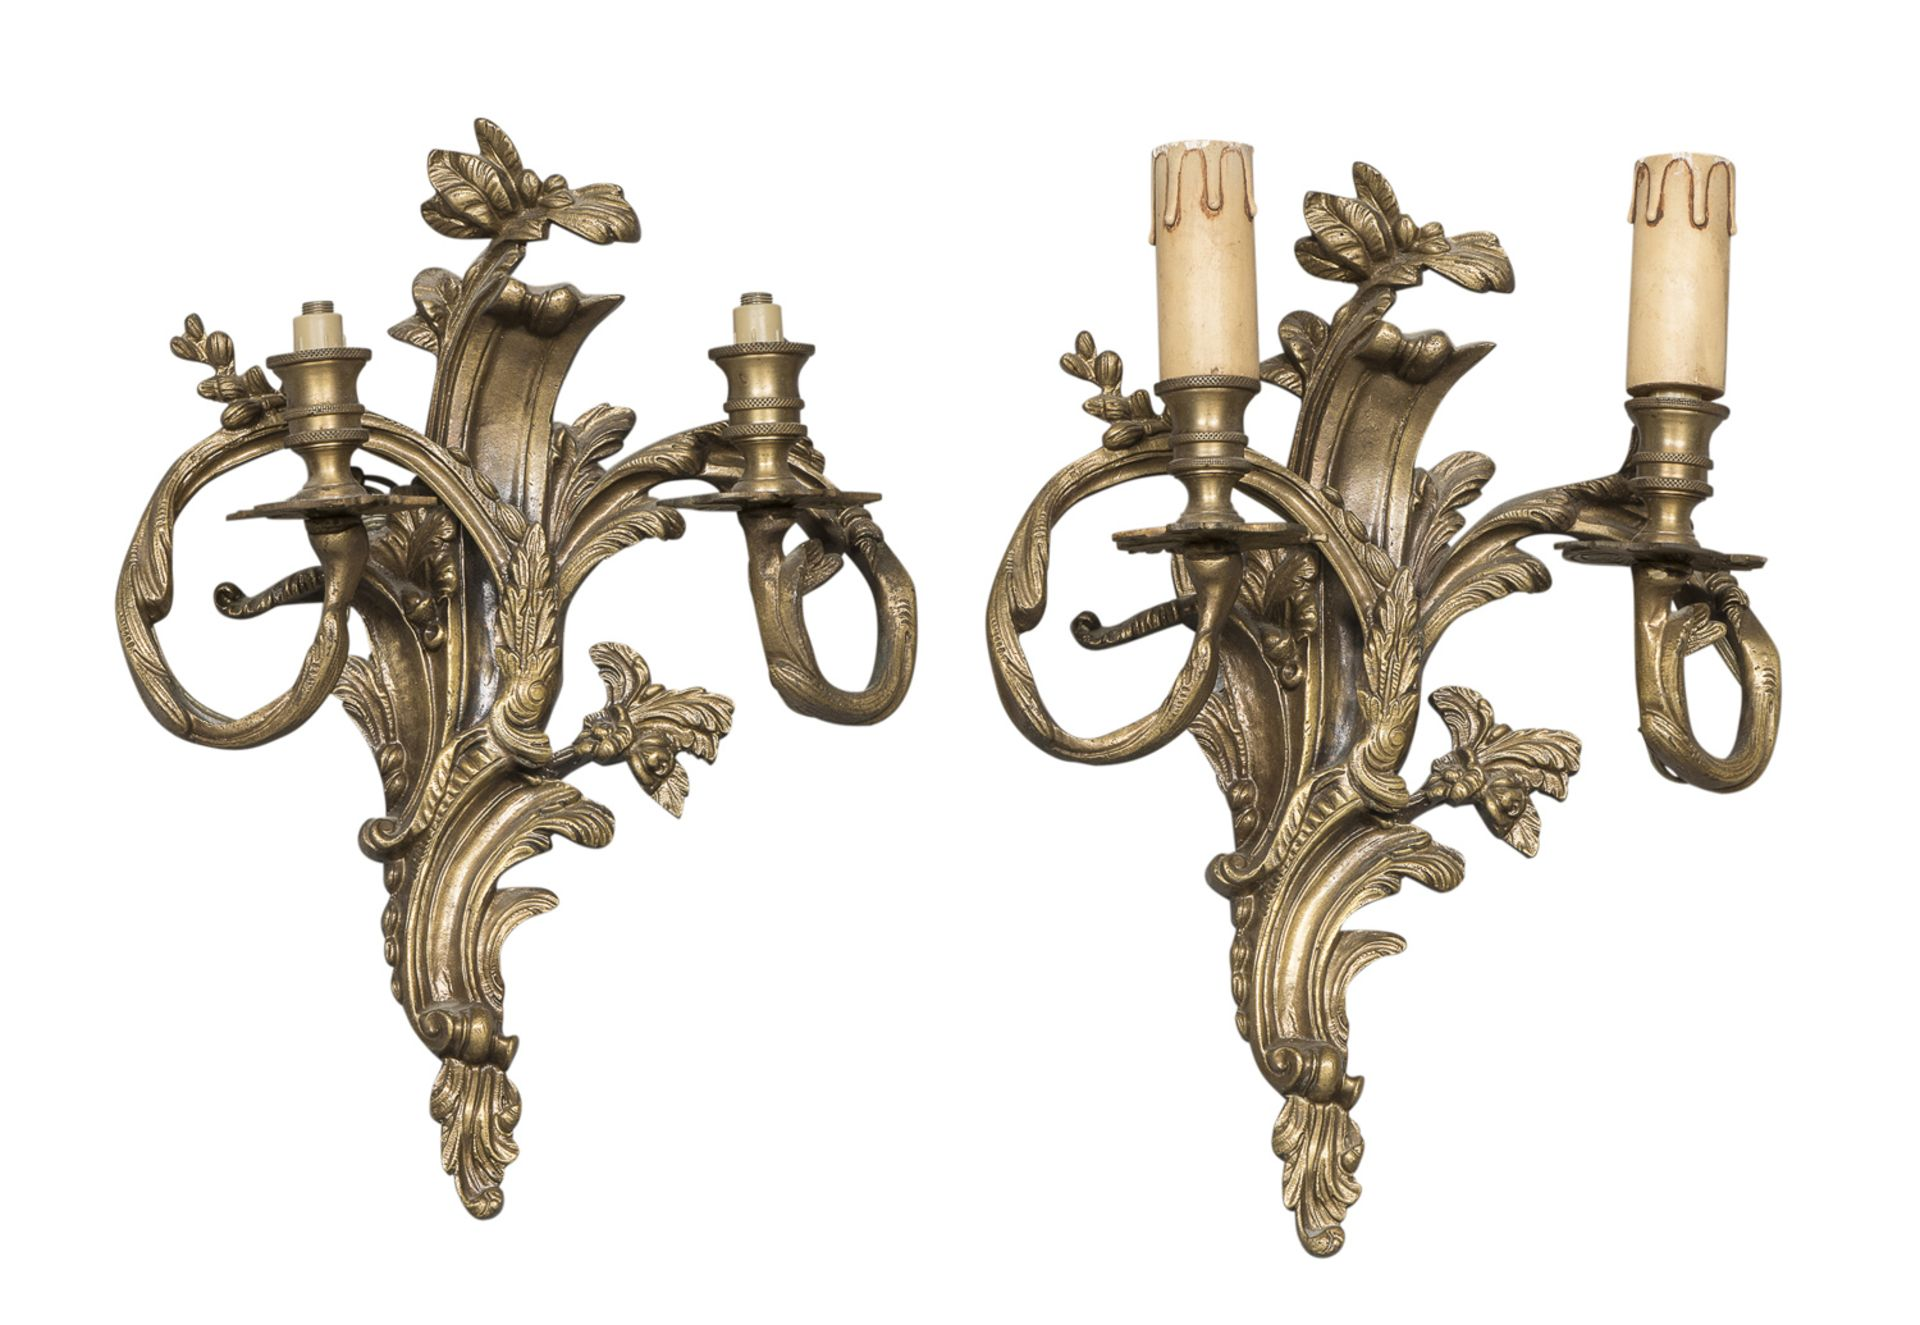 PAIR OF BRONZE APPLIQUES EARLY 20TH CENTURY